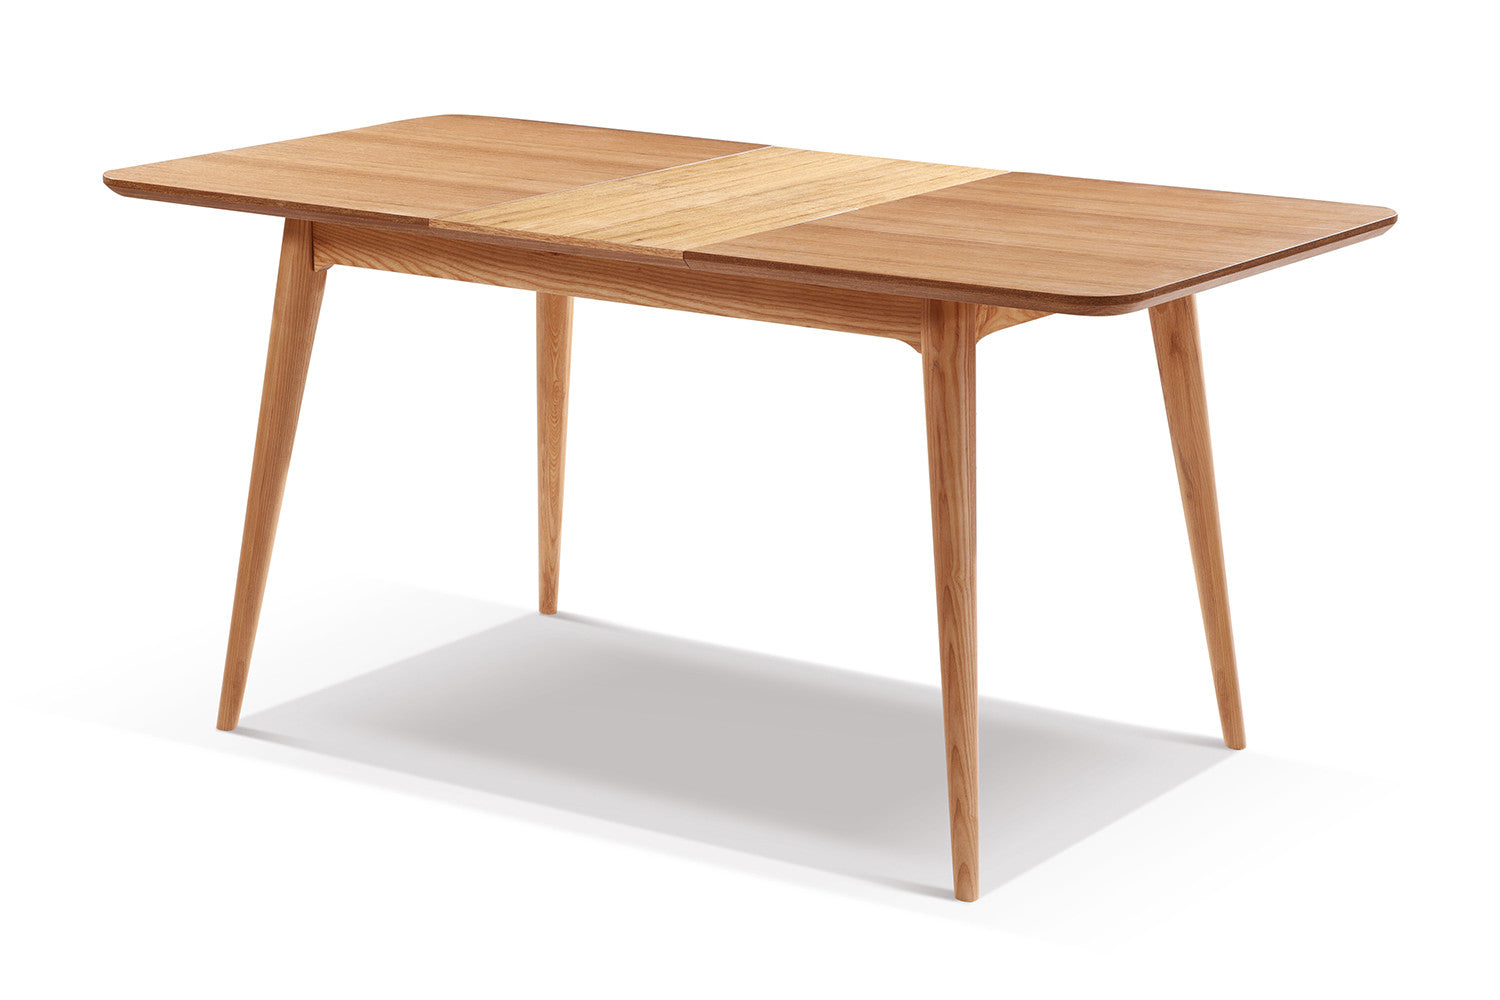 Table de salle manger extensible en bois adda dewarens for Table a rallonge